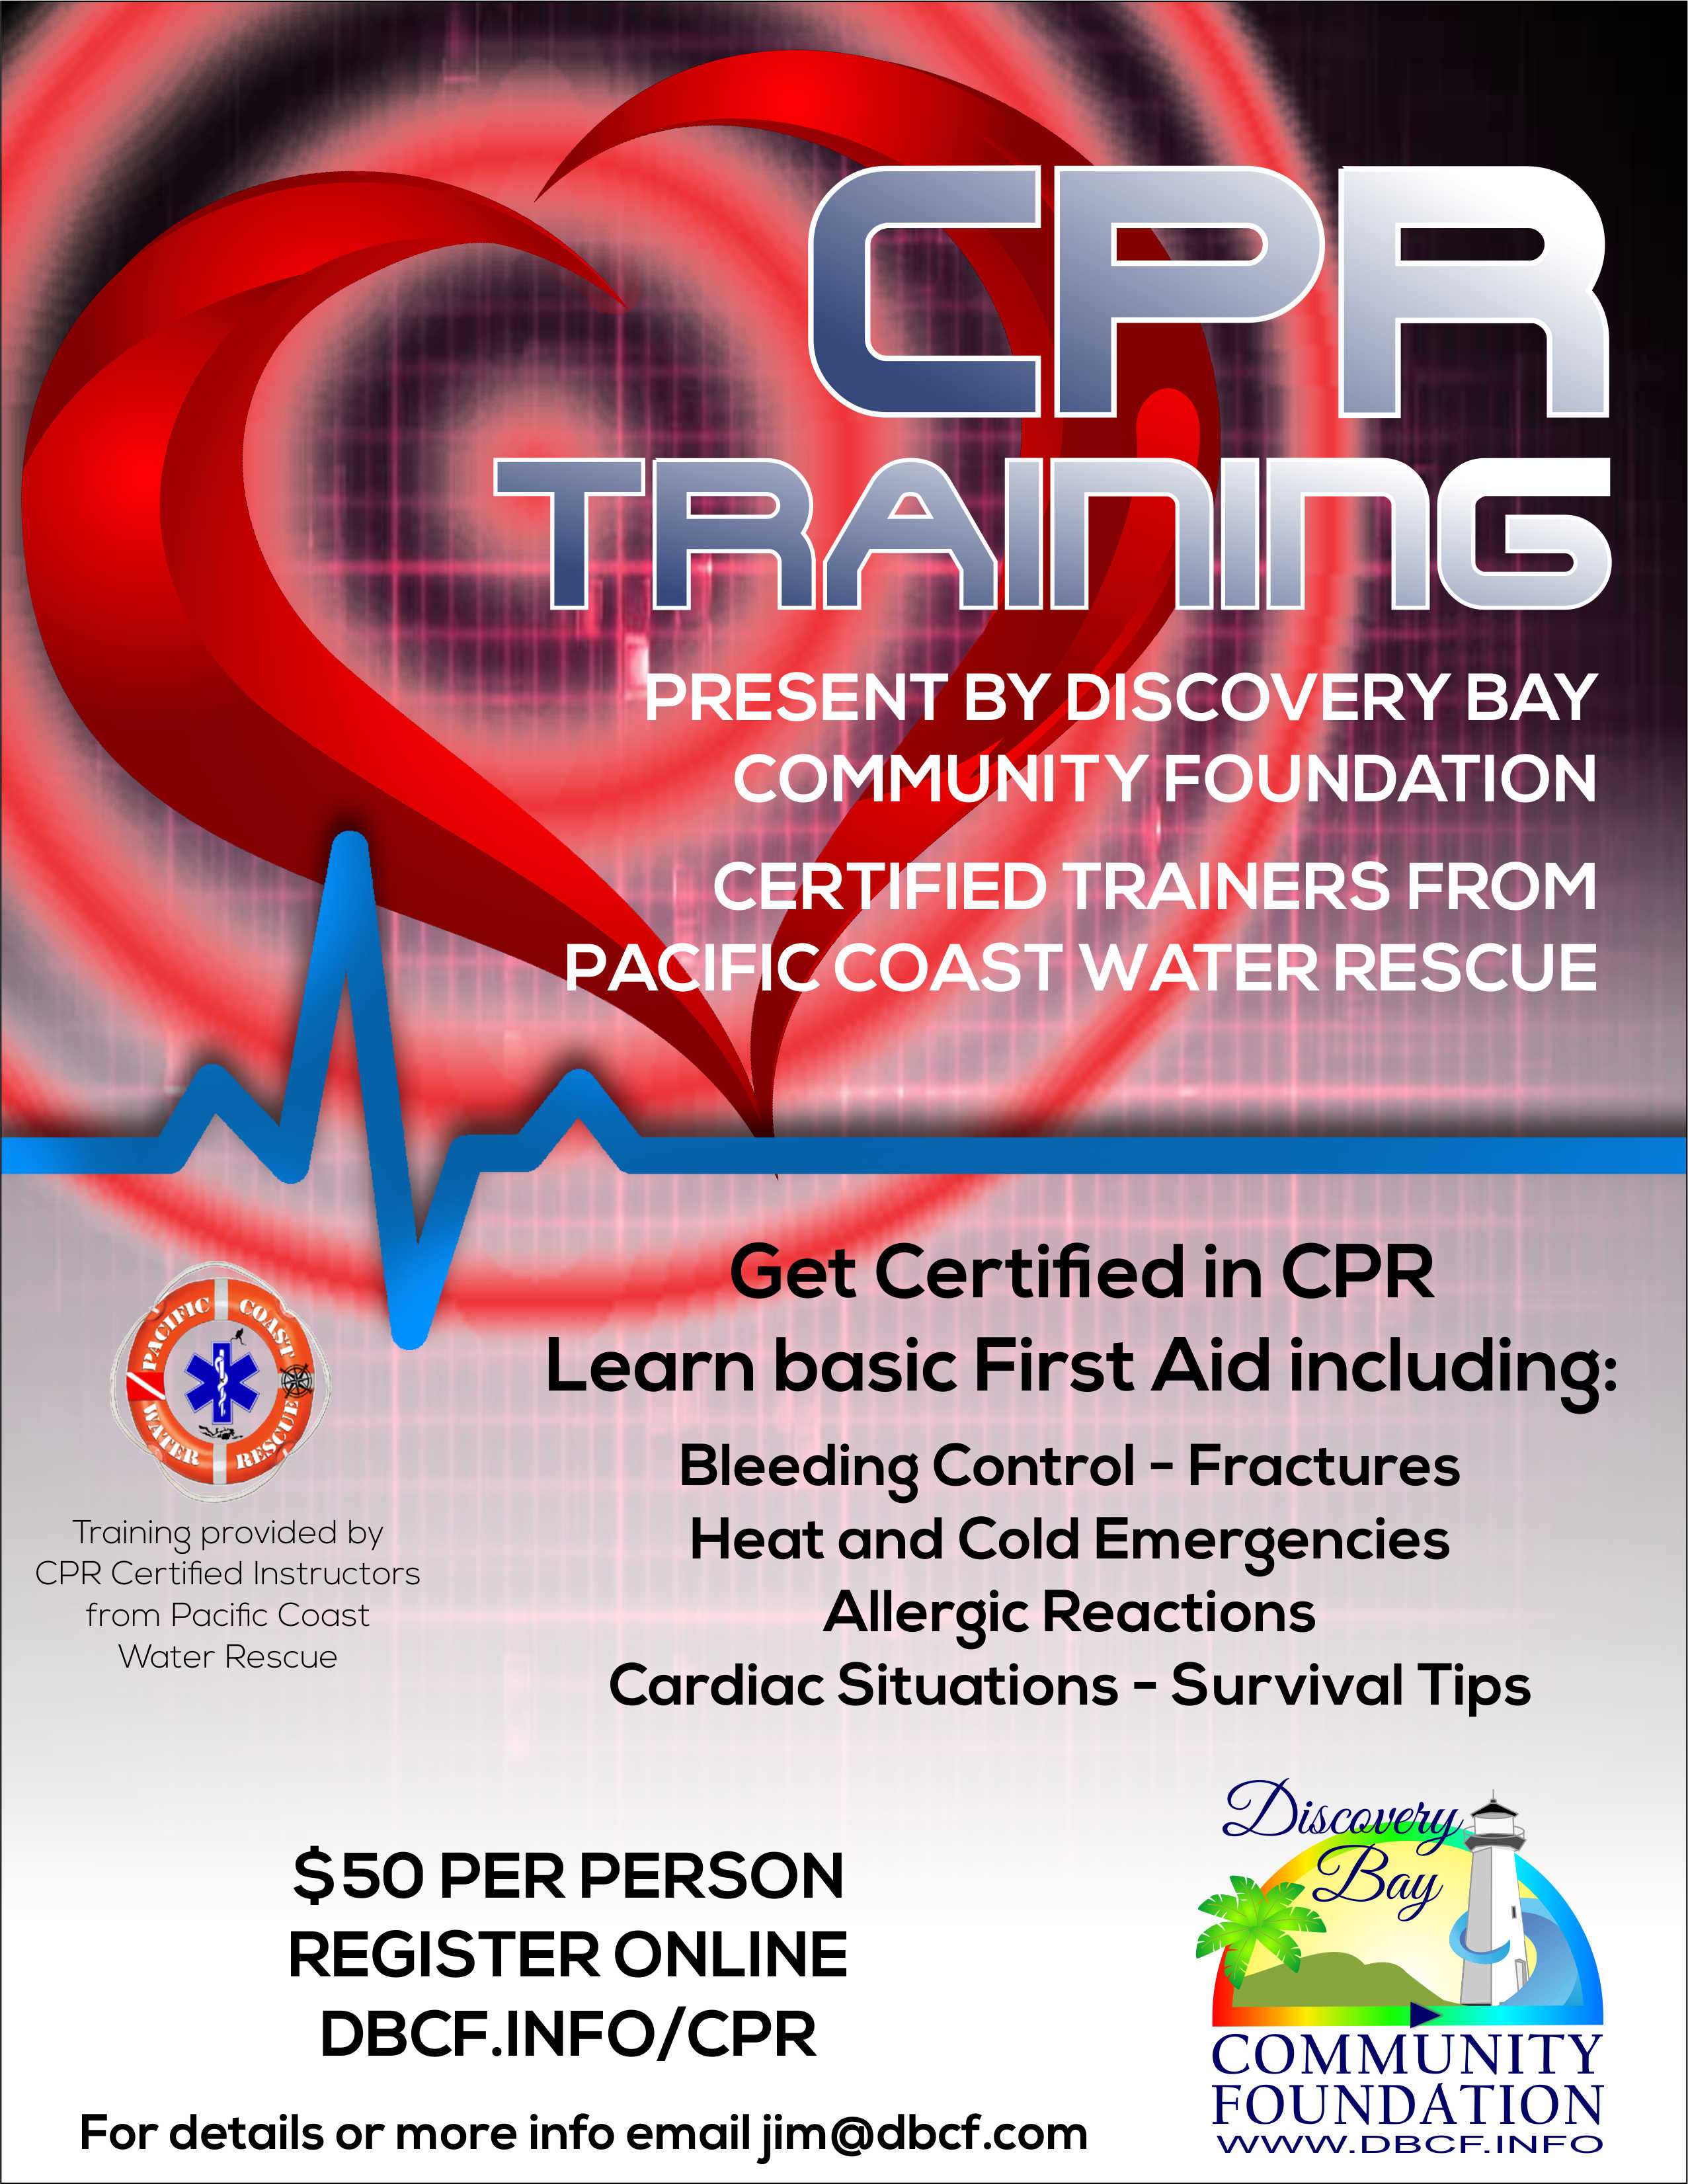 Dbcf discovery bay community foundation next class coming soon get certified in cpr learn basic first aid xflitez Images